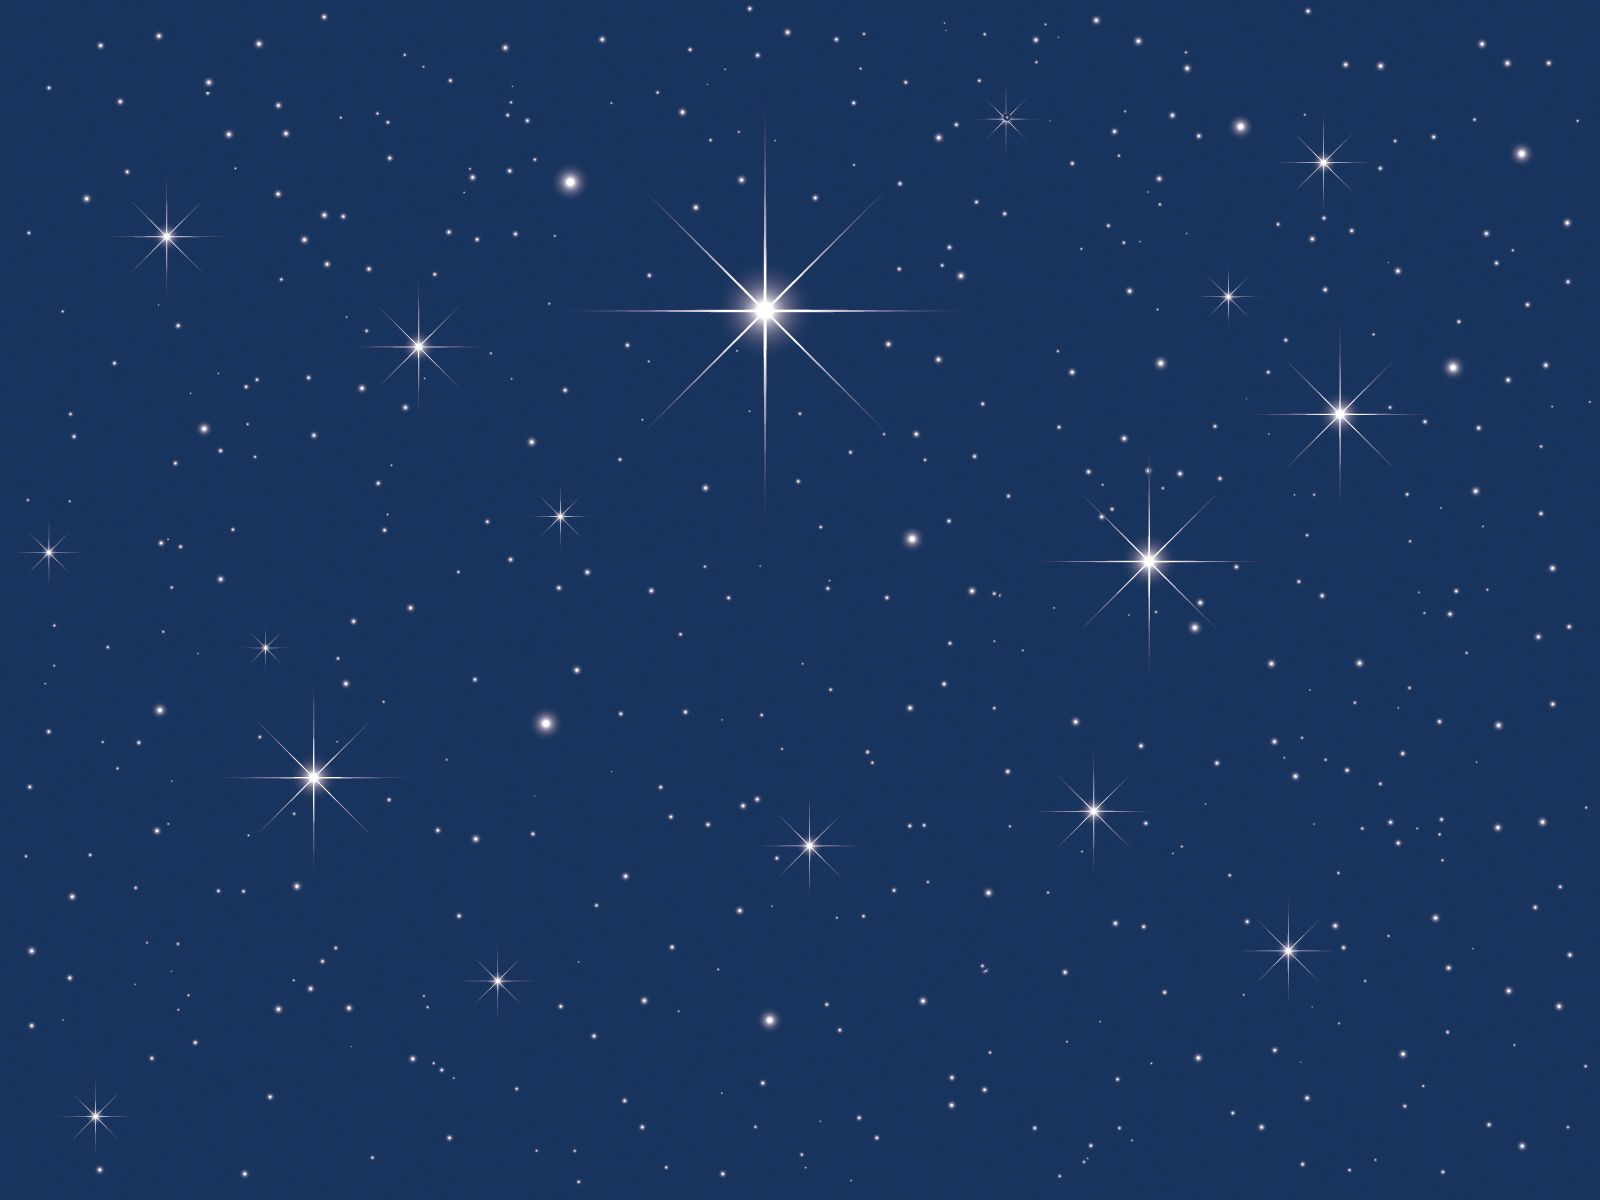 Starry sky clipart 1 cielos estrellados pinterest the starry sky powerpoint templates aqua cyan blue nature white free ppt backgrounds alramifo Images